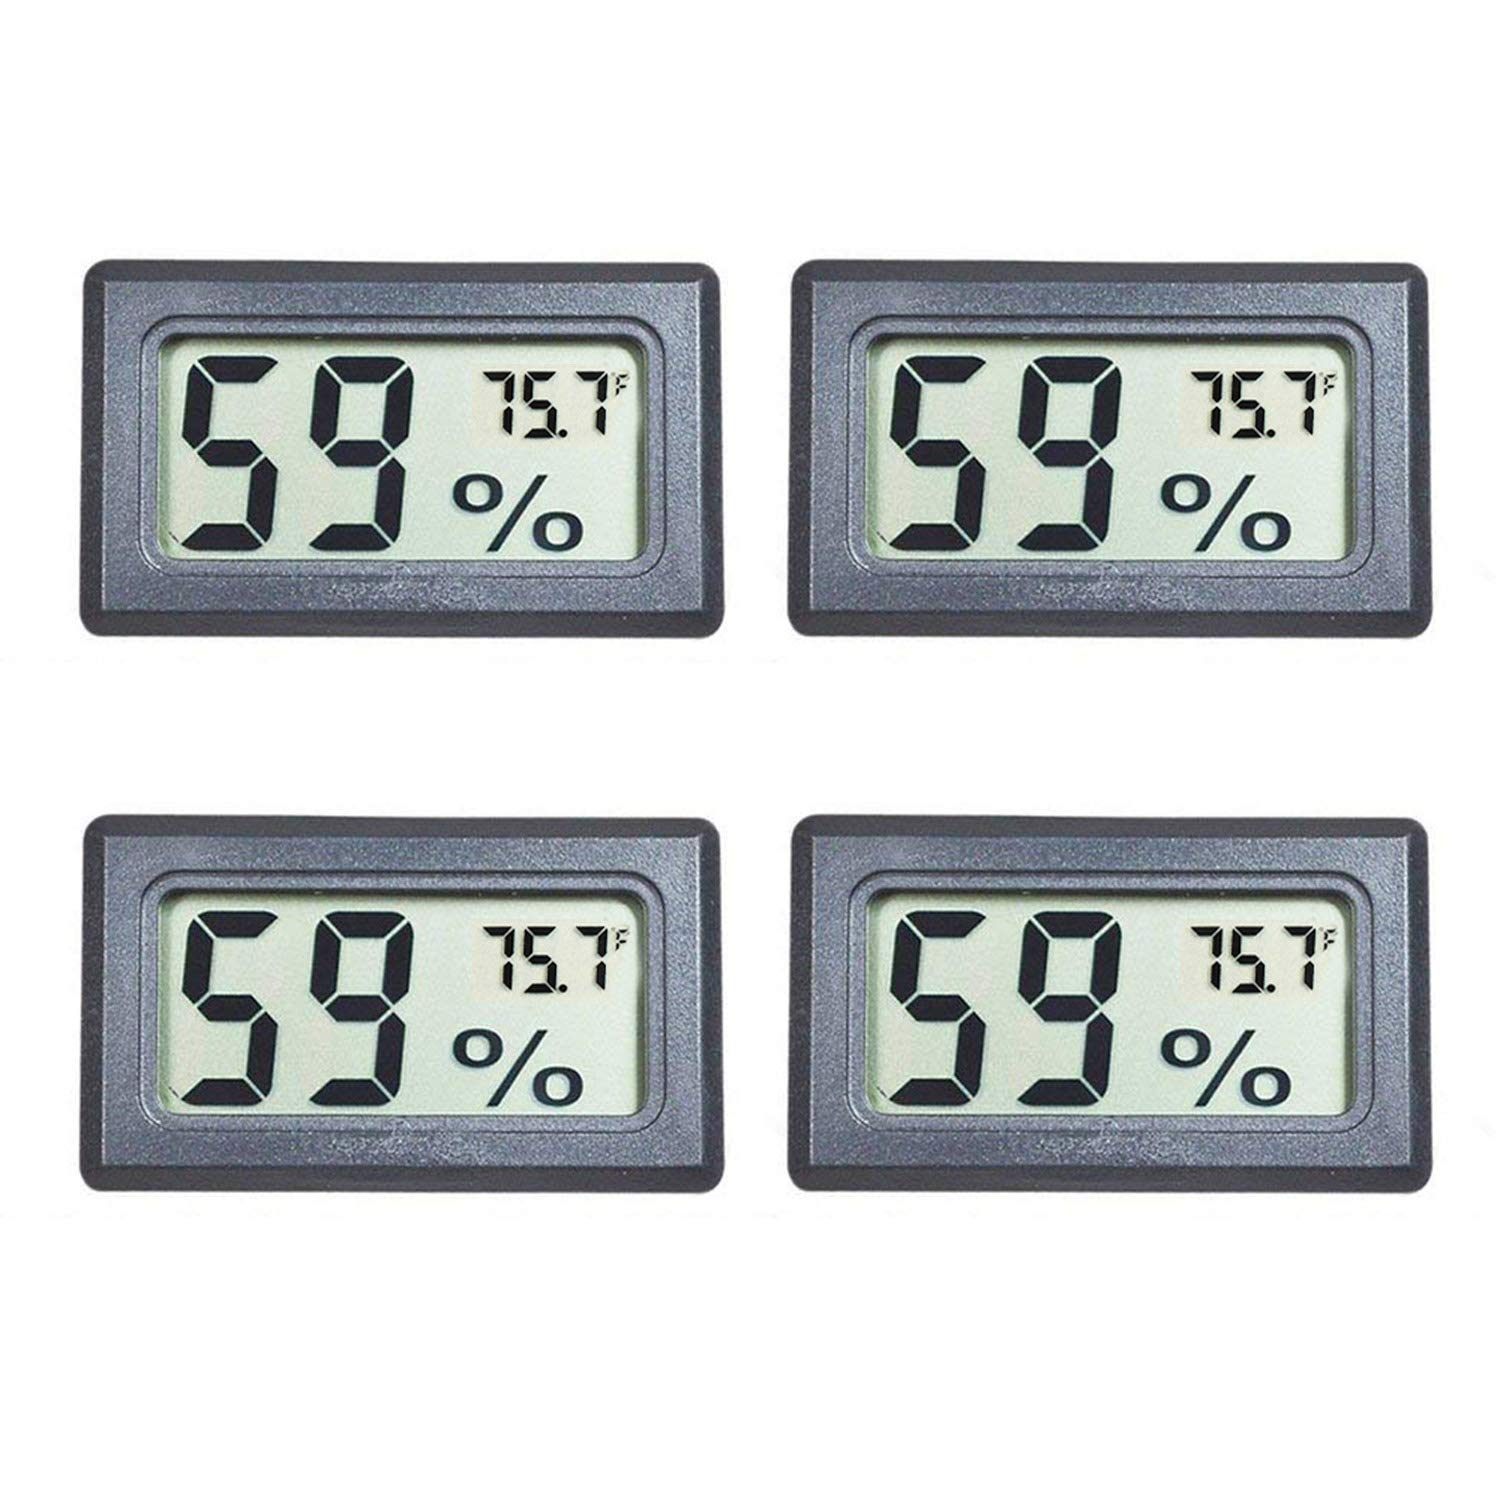 Veanic 4-Pack Mini Digital Electronic Temperature Humidity Meters Gauge Indoor Thermometer Hygrometer LCD Display Fahrenheit (℉) for Humidors, Greenhouse, Garden, Cellar, Fridge, Closet by Veanic